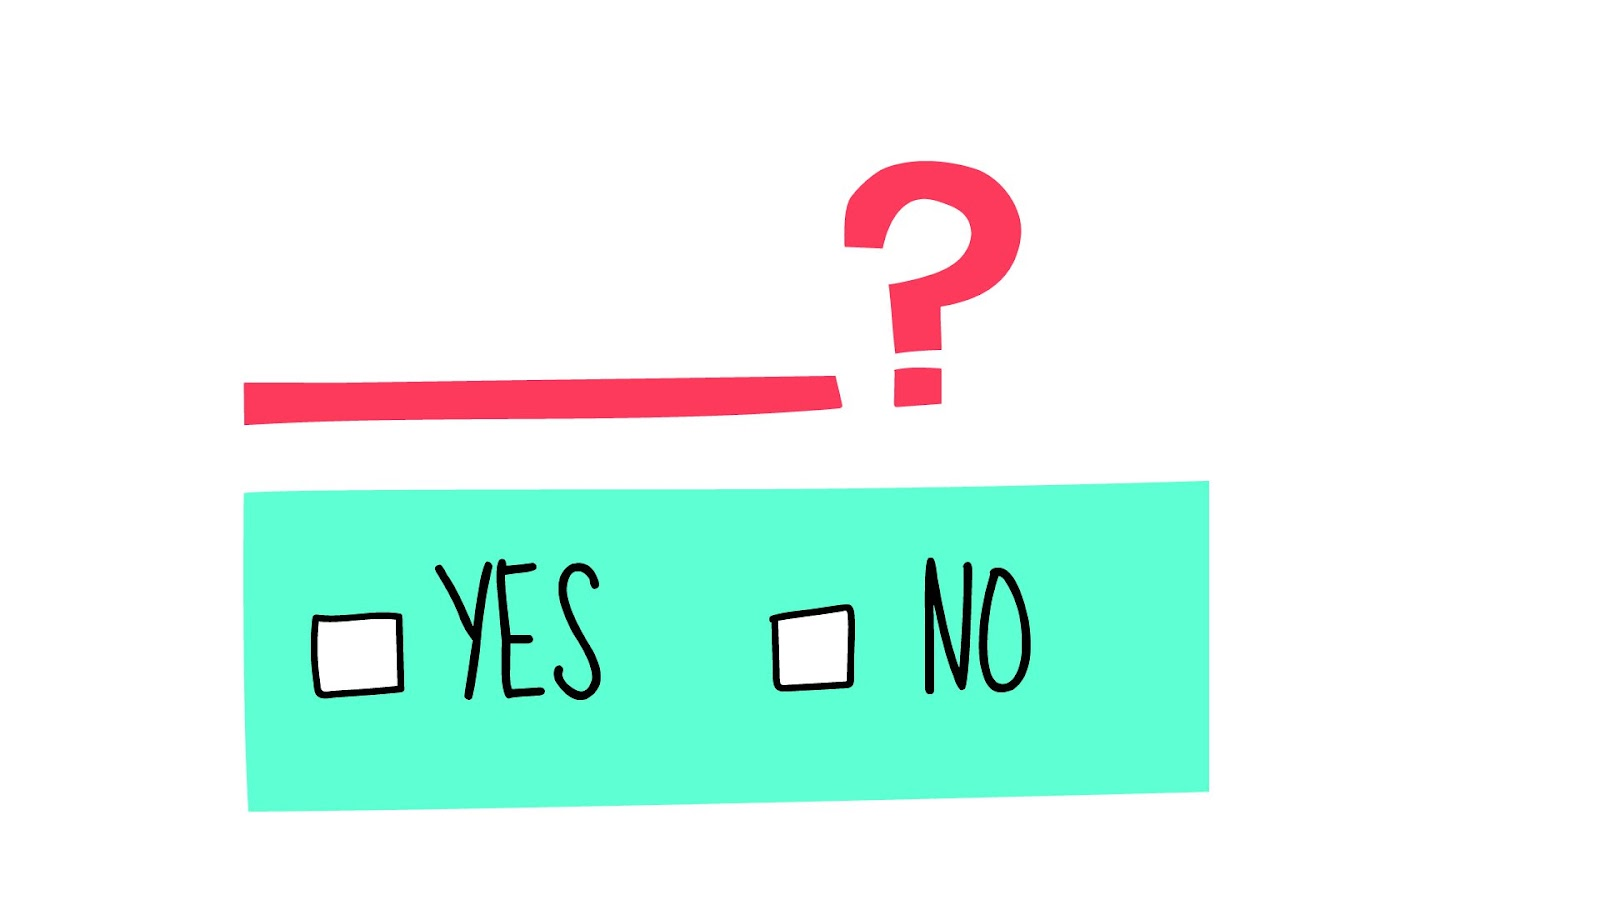 yes or no - types of survey questions